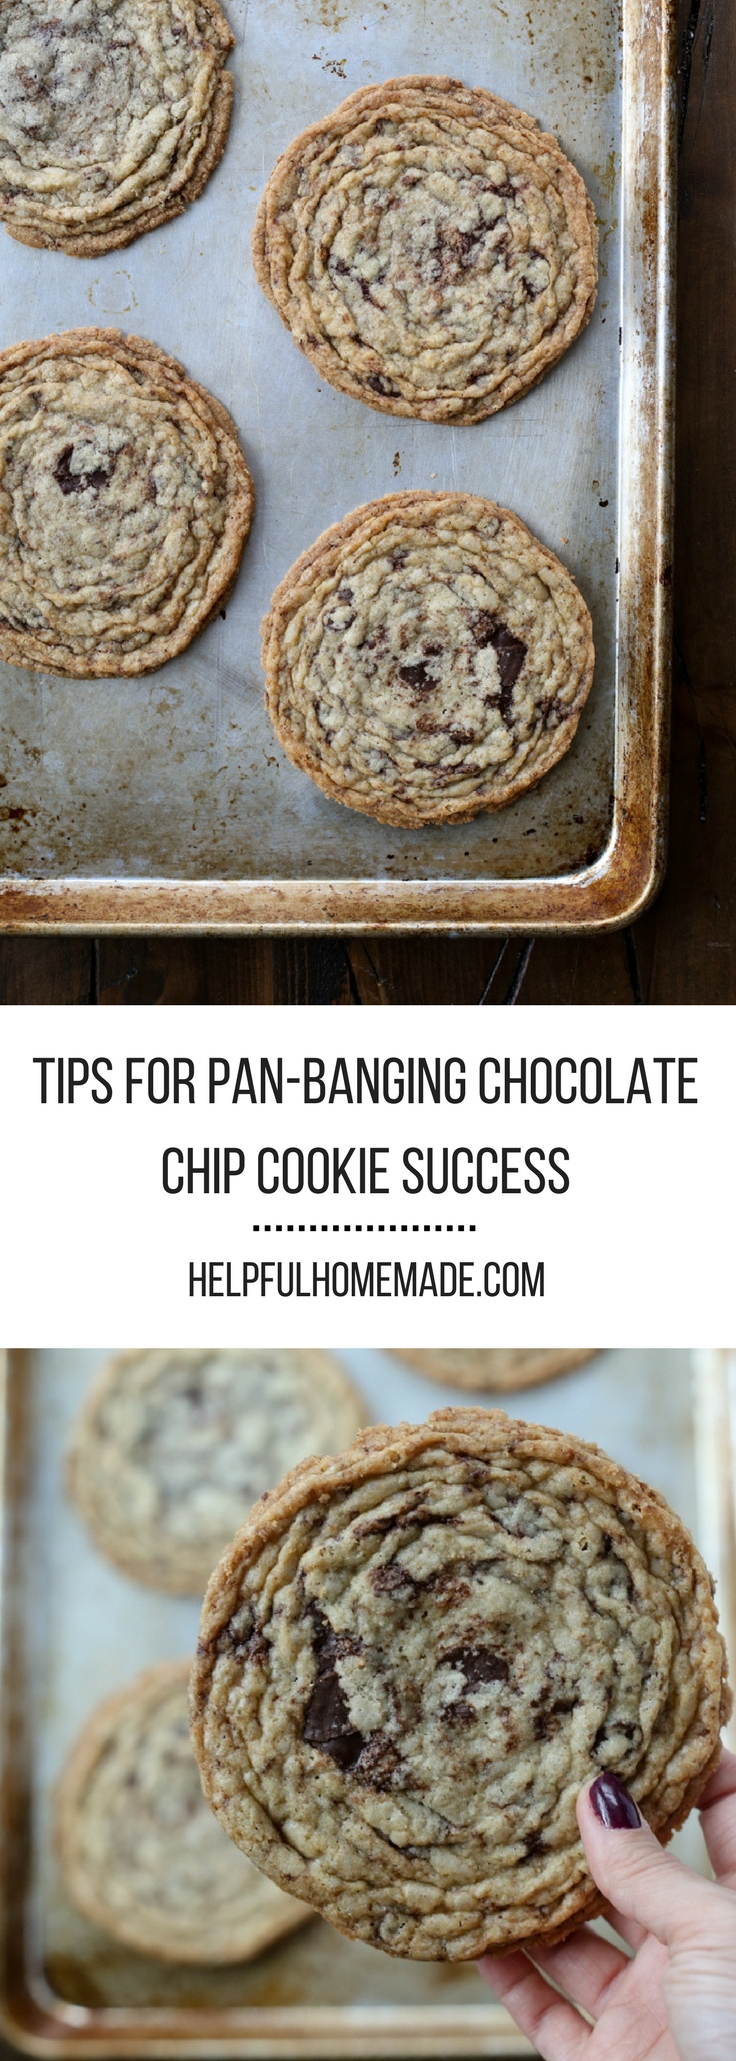 Tips for pan-banging chocolate chip cookie success